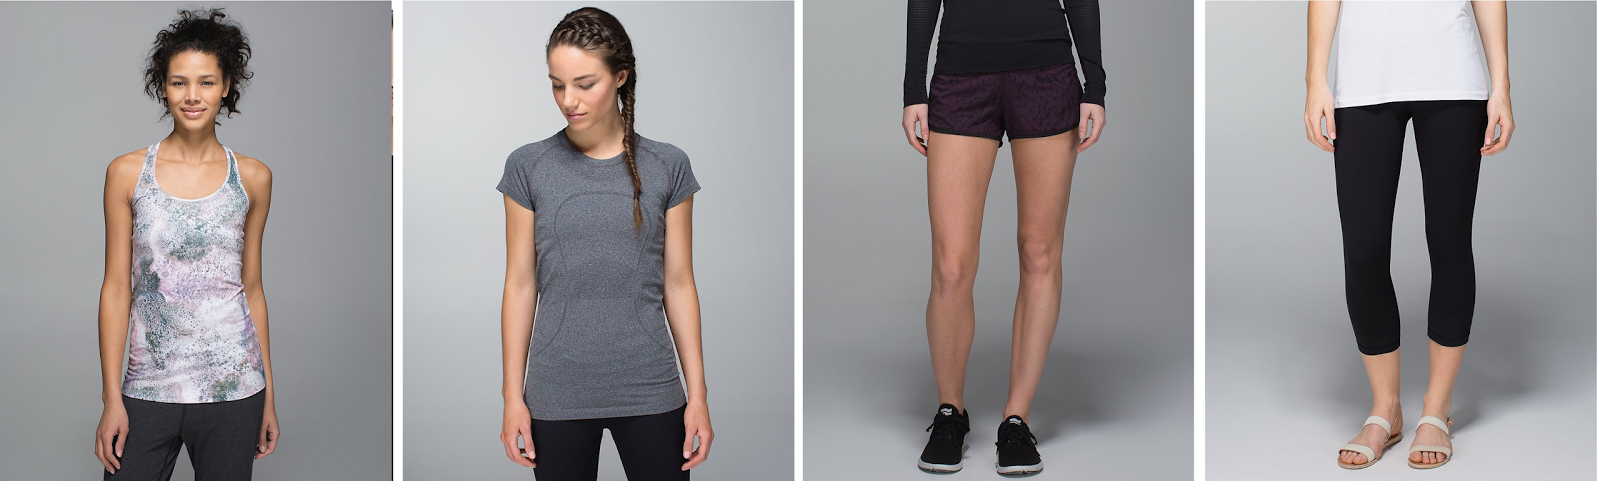 Lululemon essentials